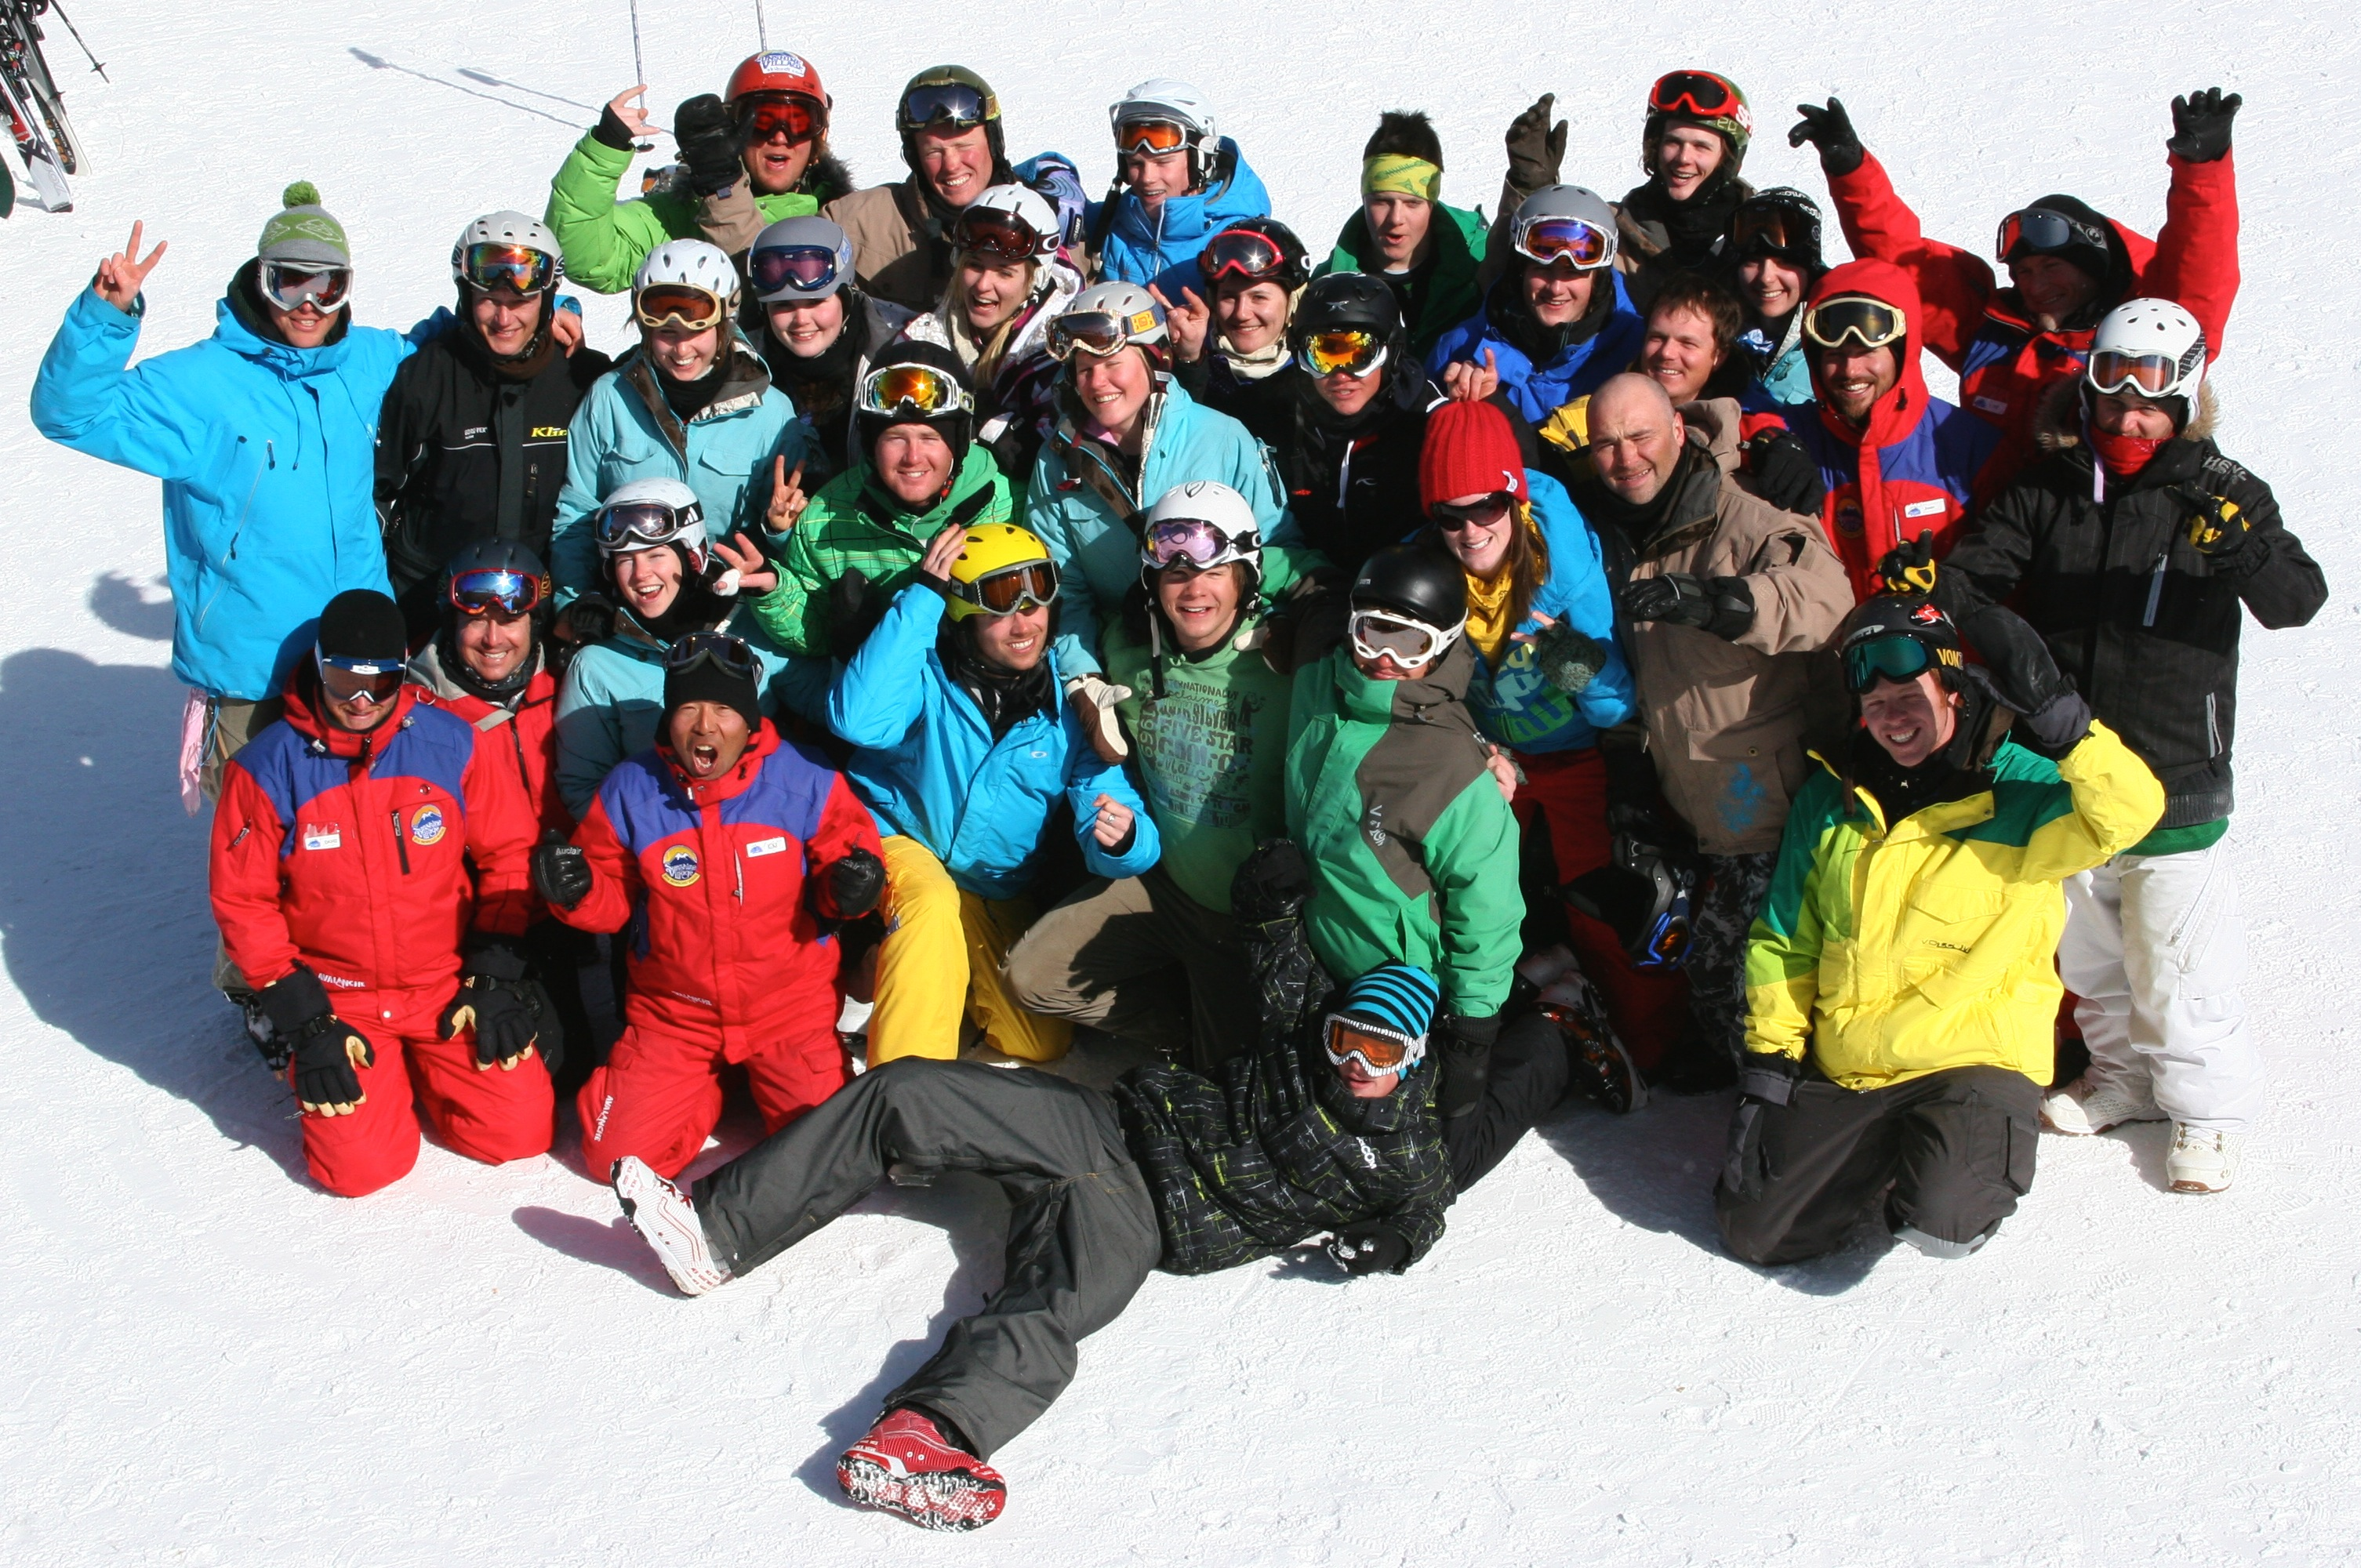 An image from the Banff Ski & Snowboard Instructor Course course